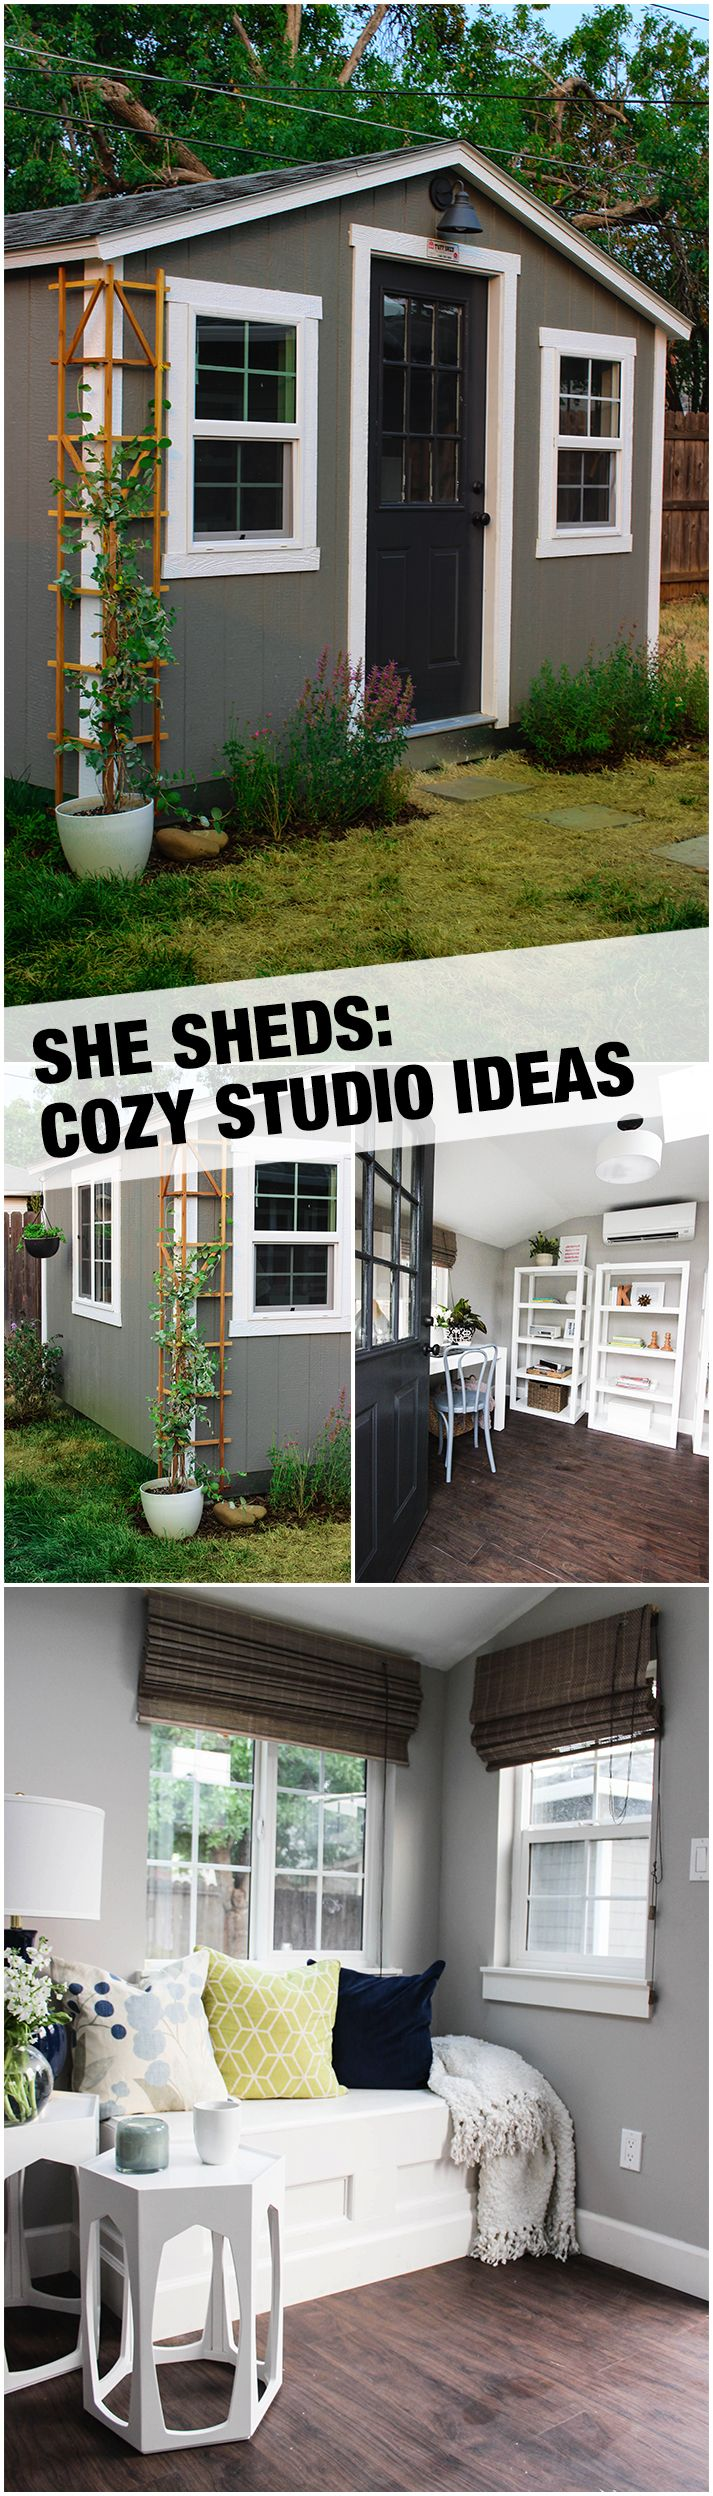 A Cozy Studio She Shed 53 best